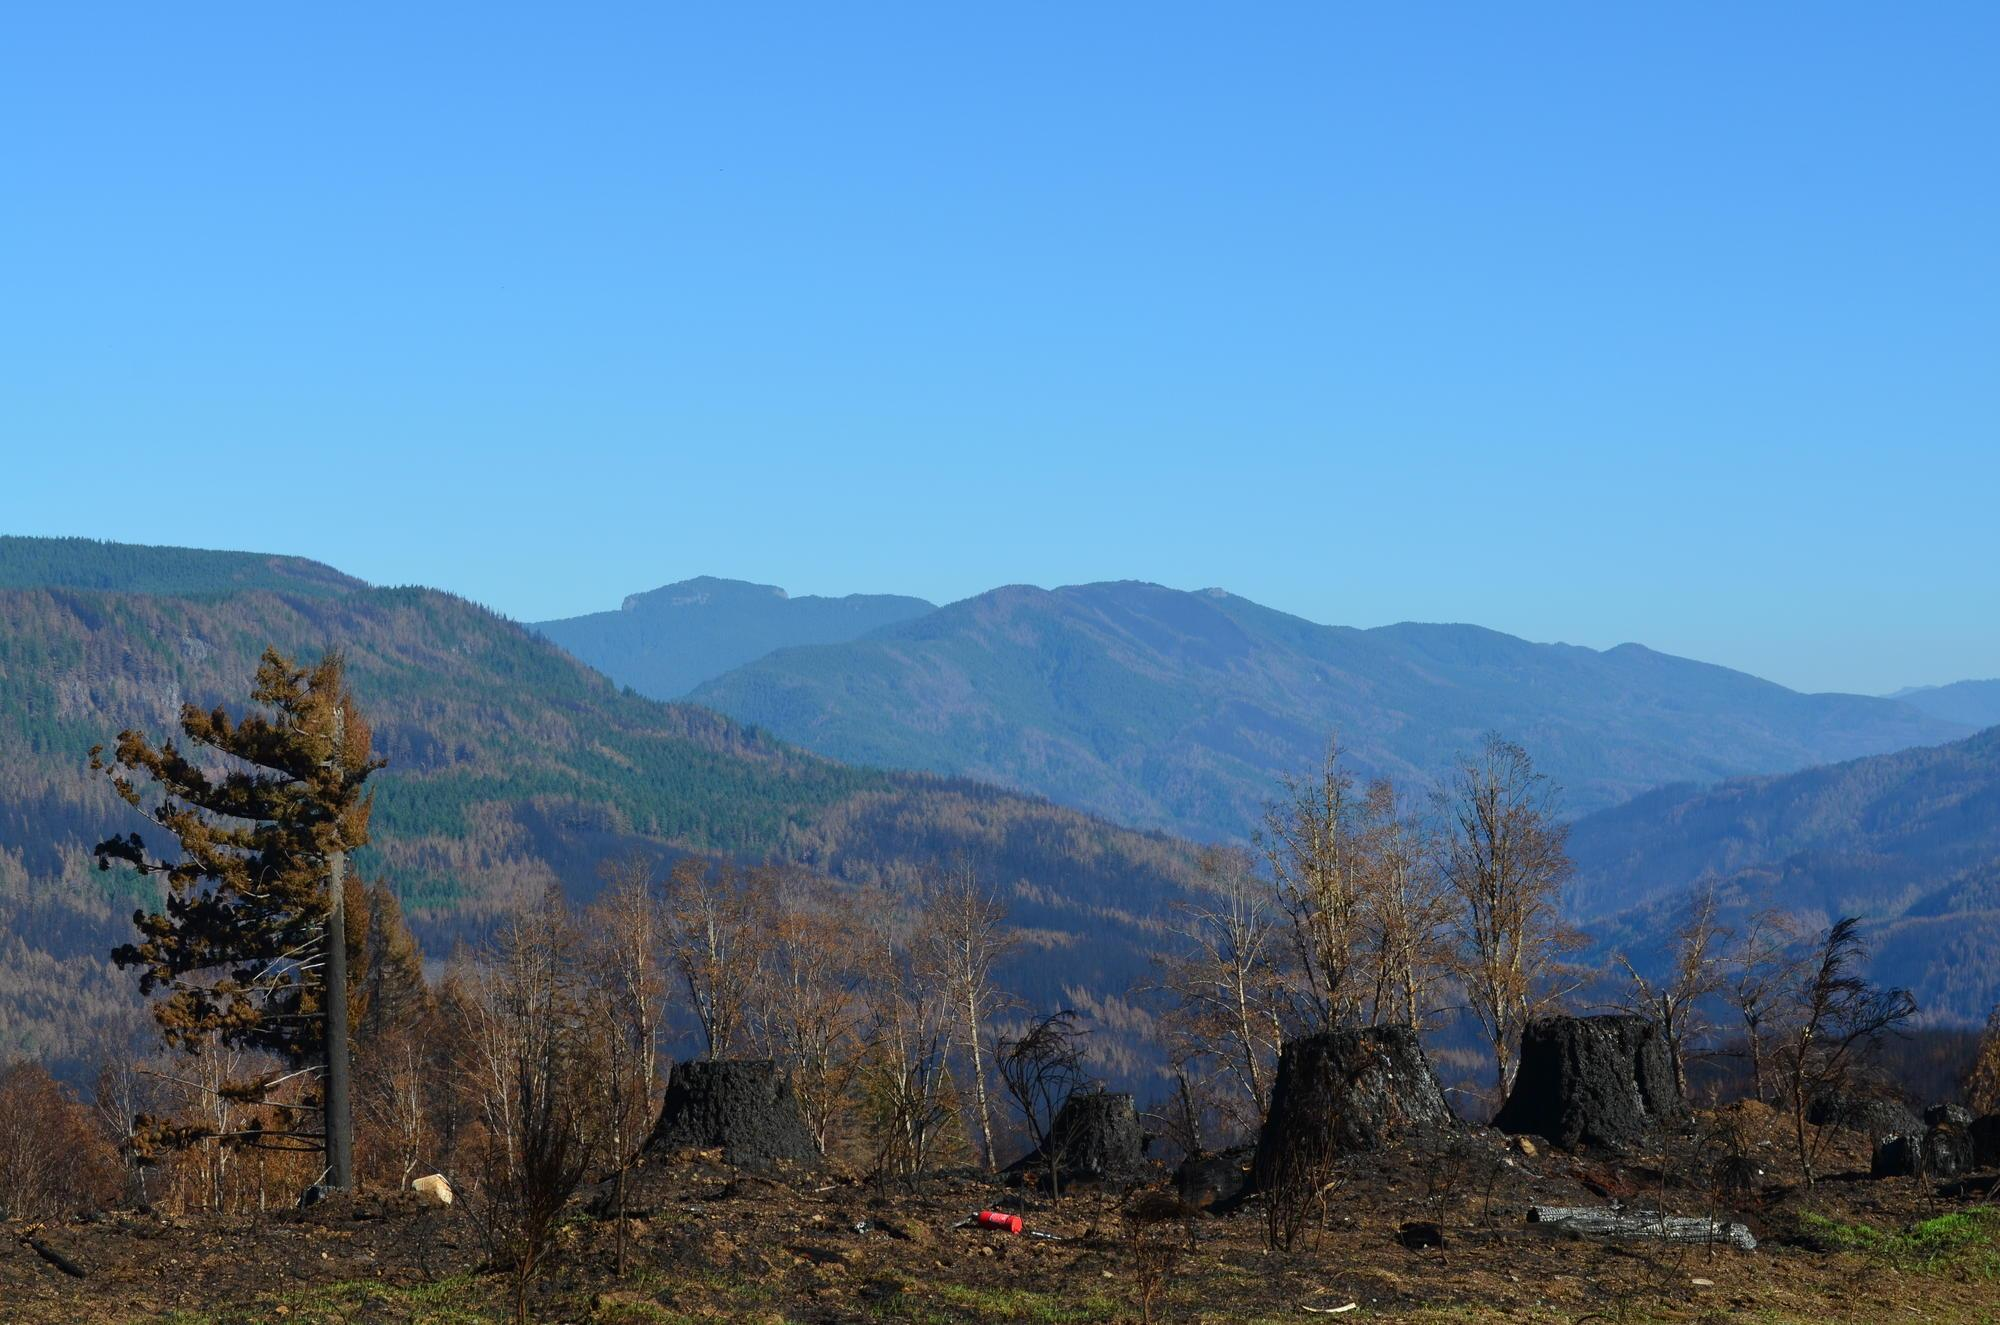 Burn scar from Beachie Creek Fire, 2020.